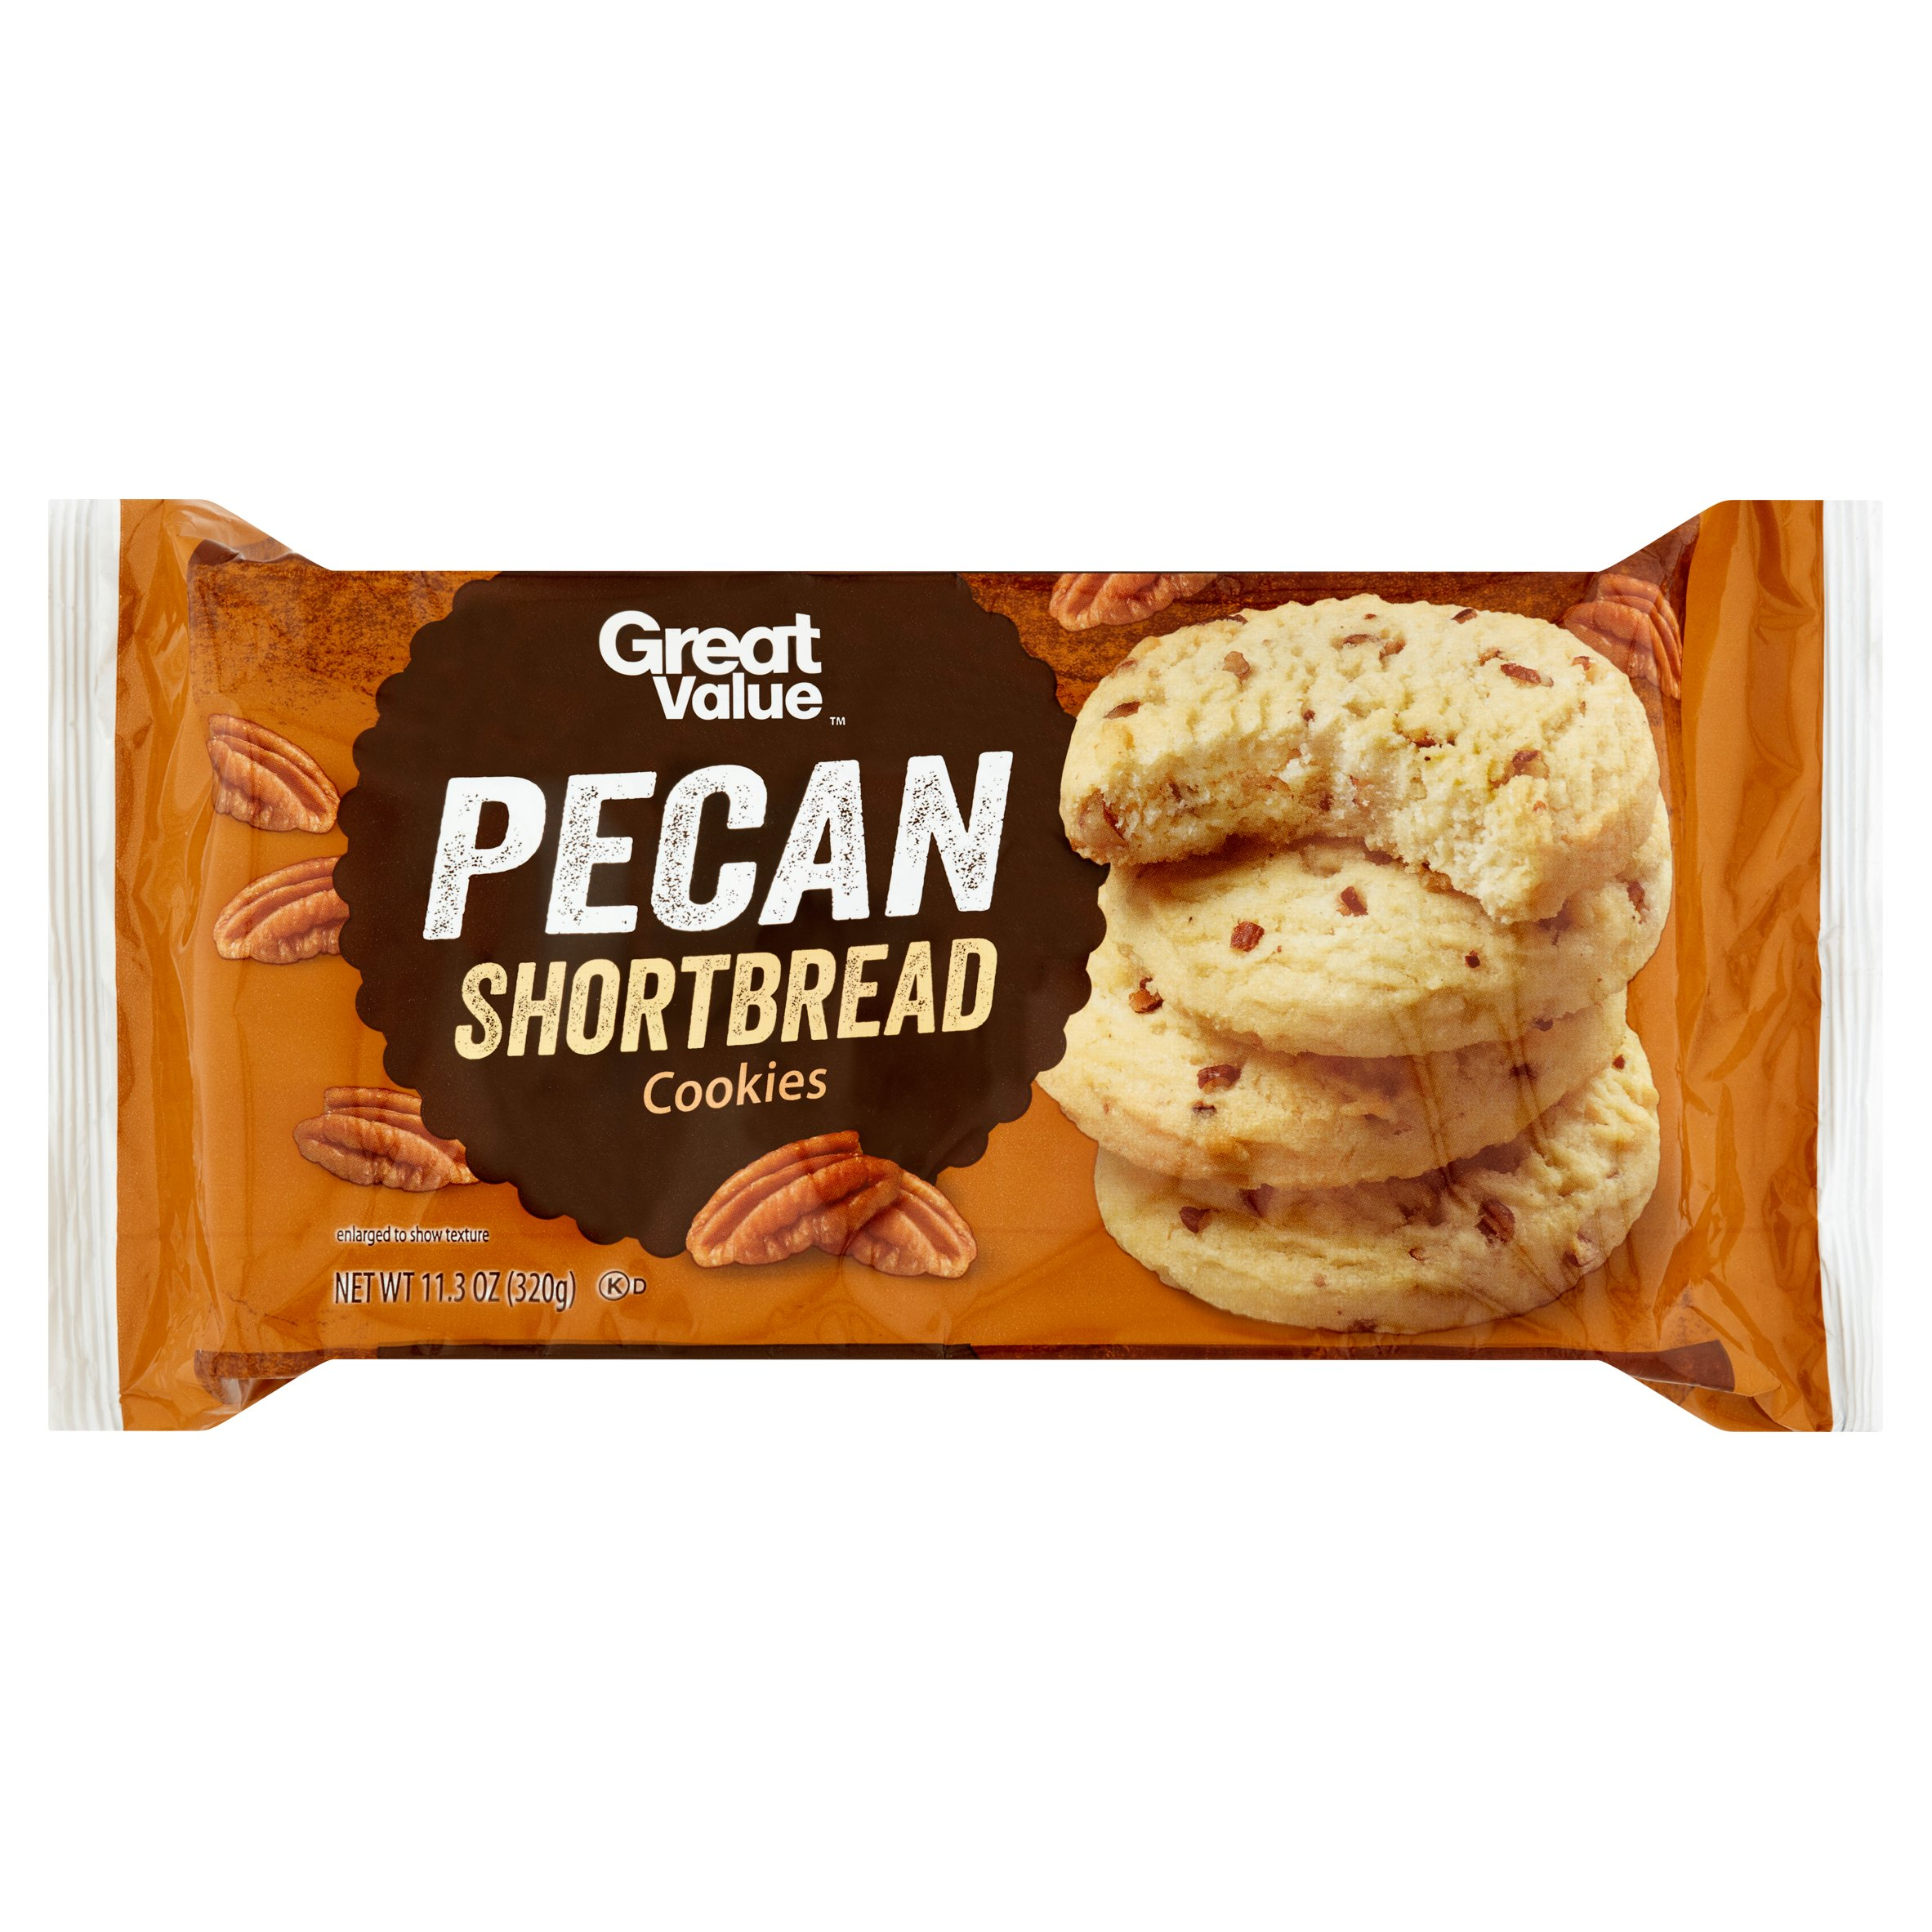 Great Value Pecan Shortbread Cookies, 11.3 oz by Wal-Mart Stores, Inc.